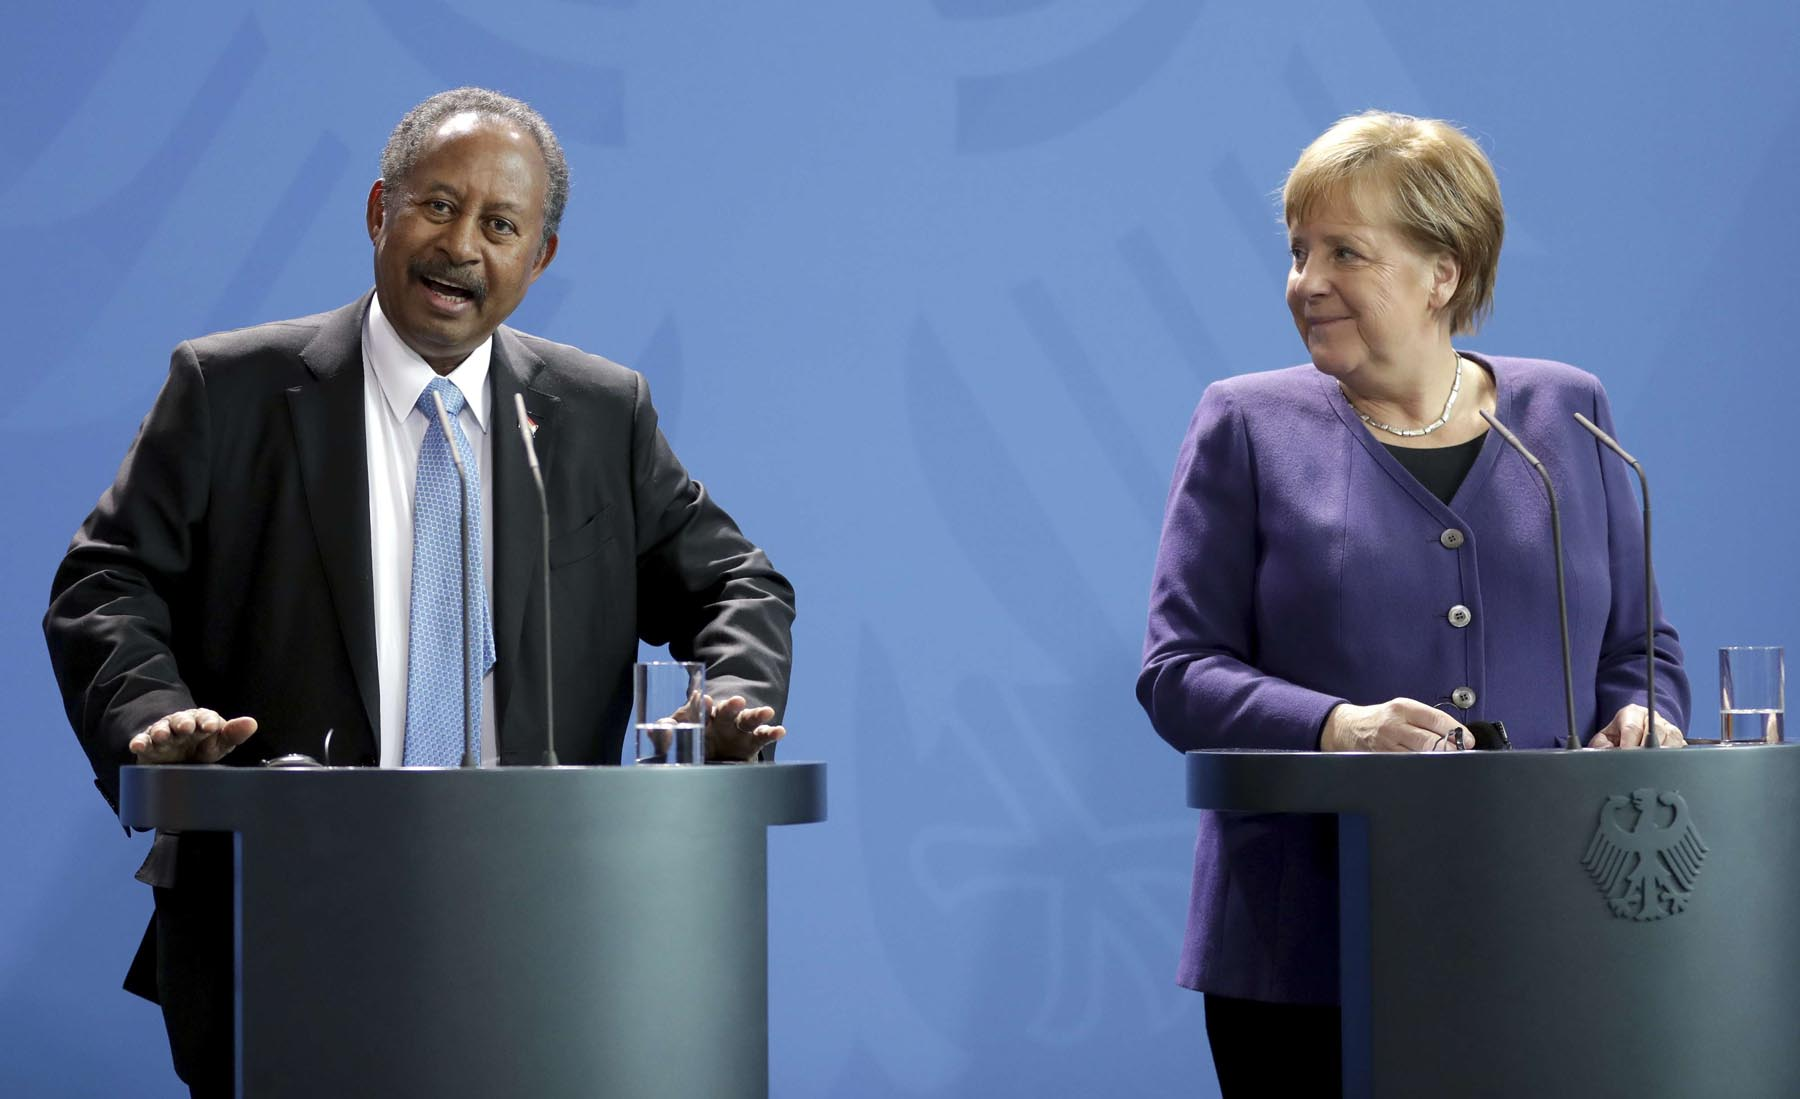 German Chancellor Angela Merkel, right, and the Prime Minister of Sudan, Abdalla Hamdok, left, attend a joint statement in Berlin, Germany, Friday, Feb. 14. (AP)